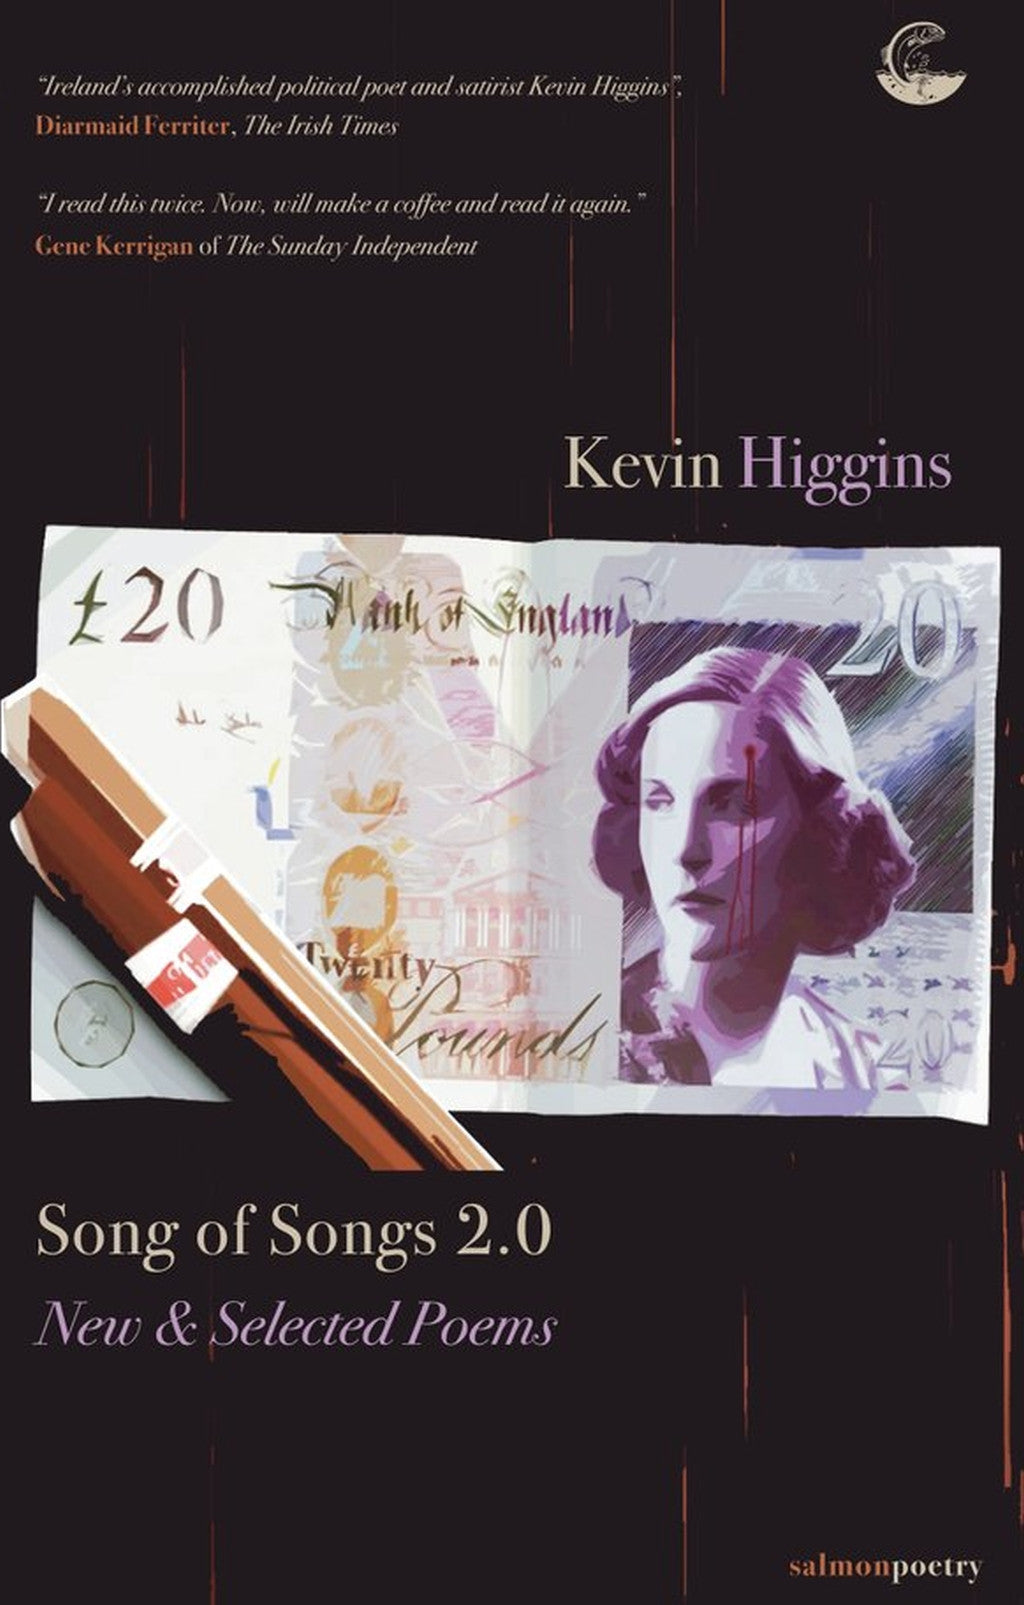 Songs of Songs 2.0